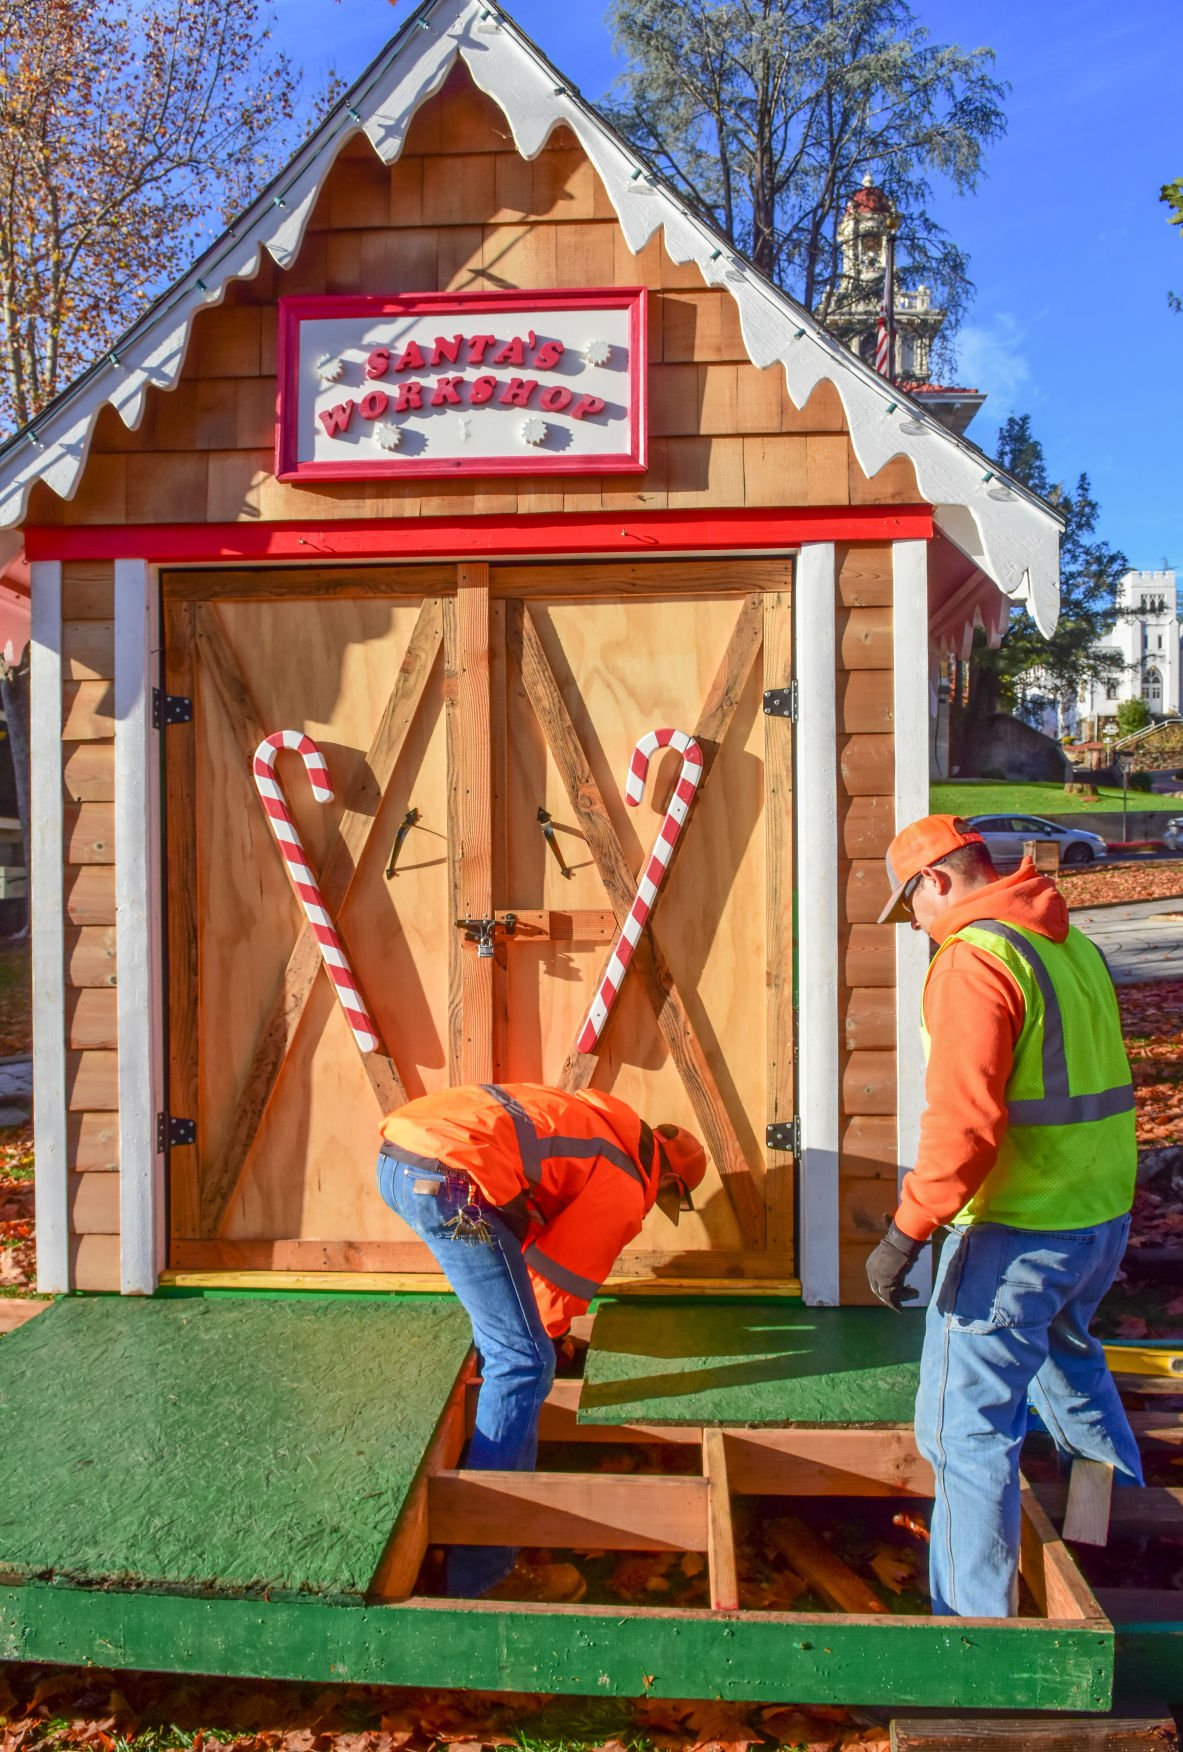 Santa's Hut goes up in Courthouse Square